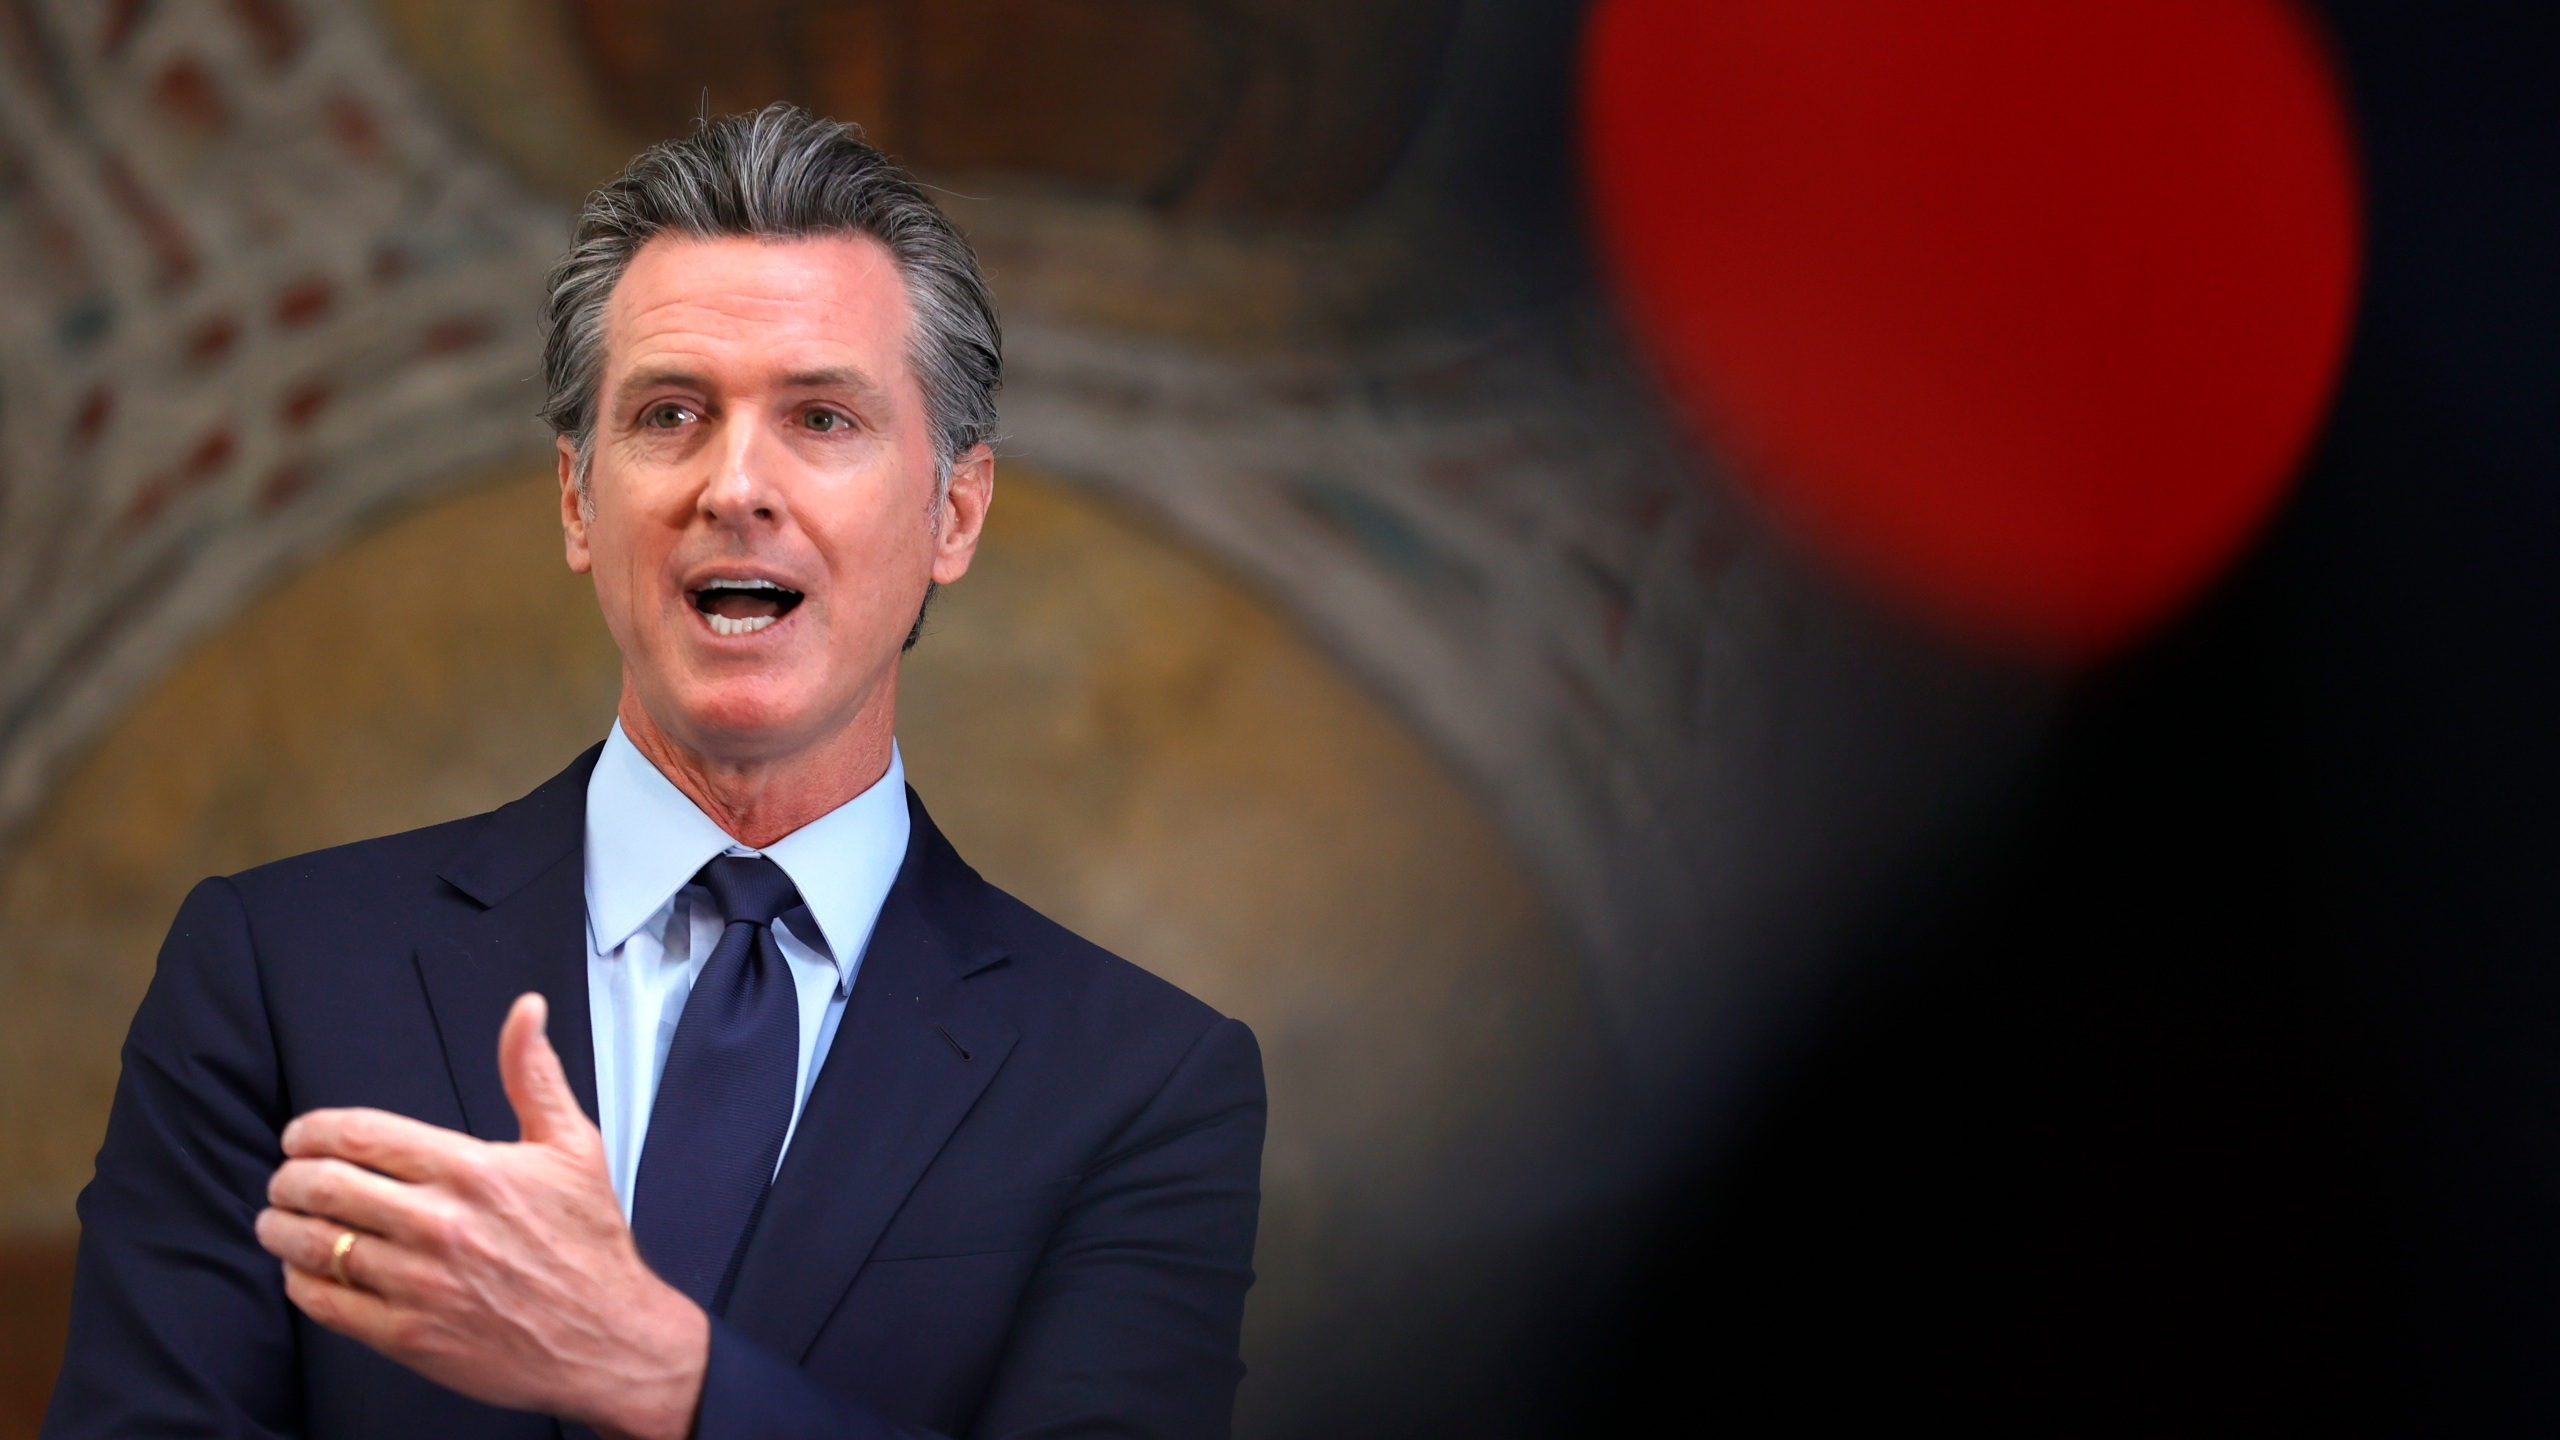 California Gov. Gavin Newsom speaks during a press conference at The Unity Council in Oakland on May 10, 2021. (Justin Sullivan / Getty Images)